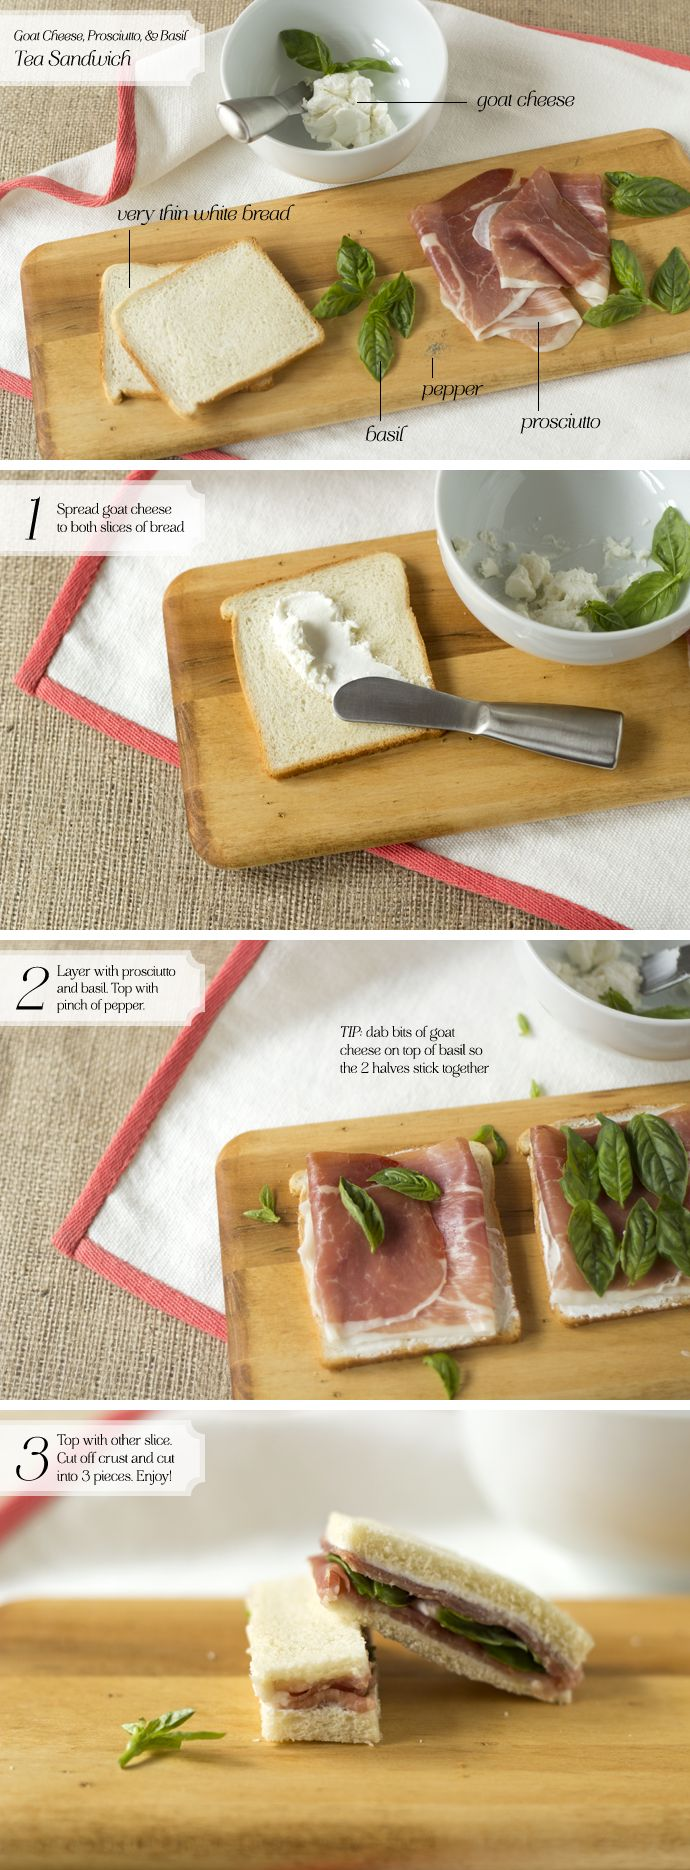 [Tea Sandwich] Goat Cheese, Prosciutto,Basil - Home - Oh, How Civilized